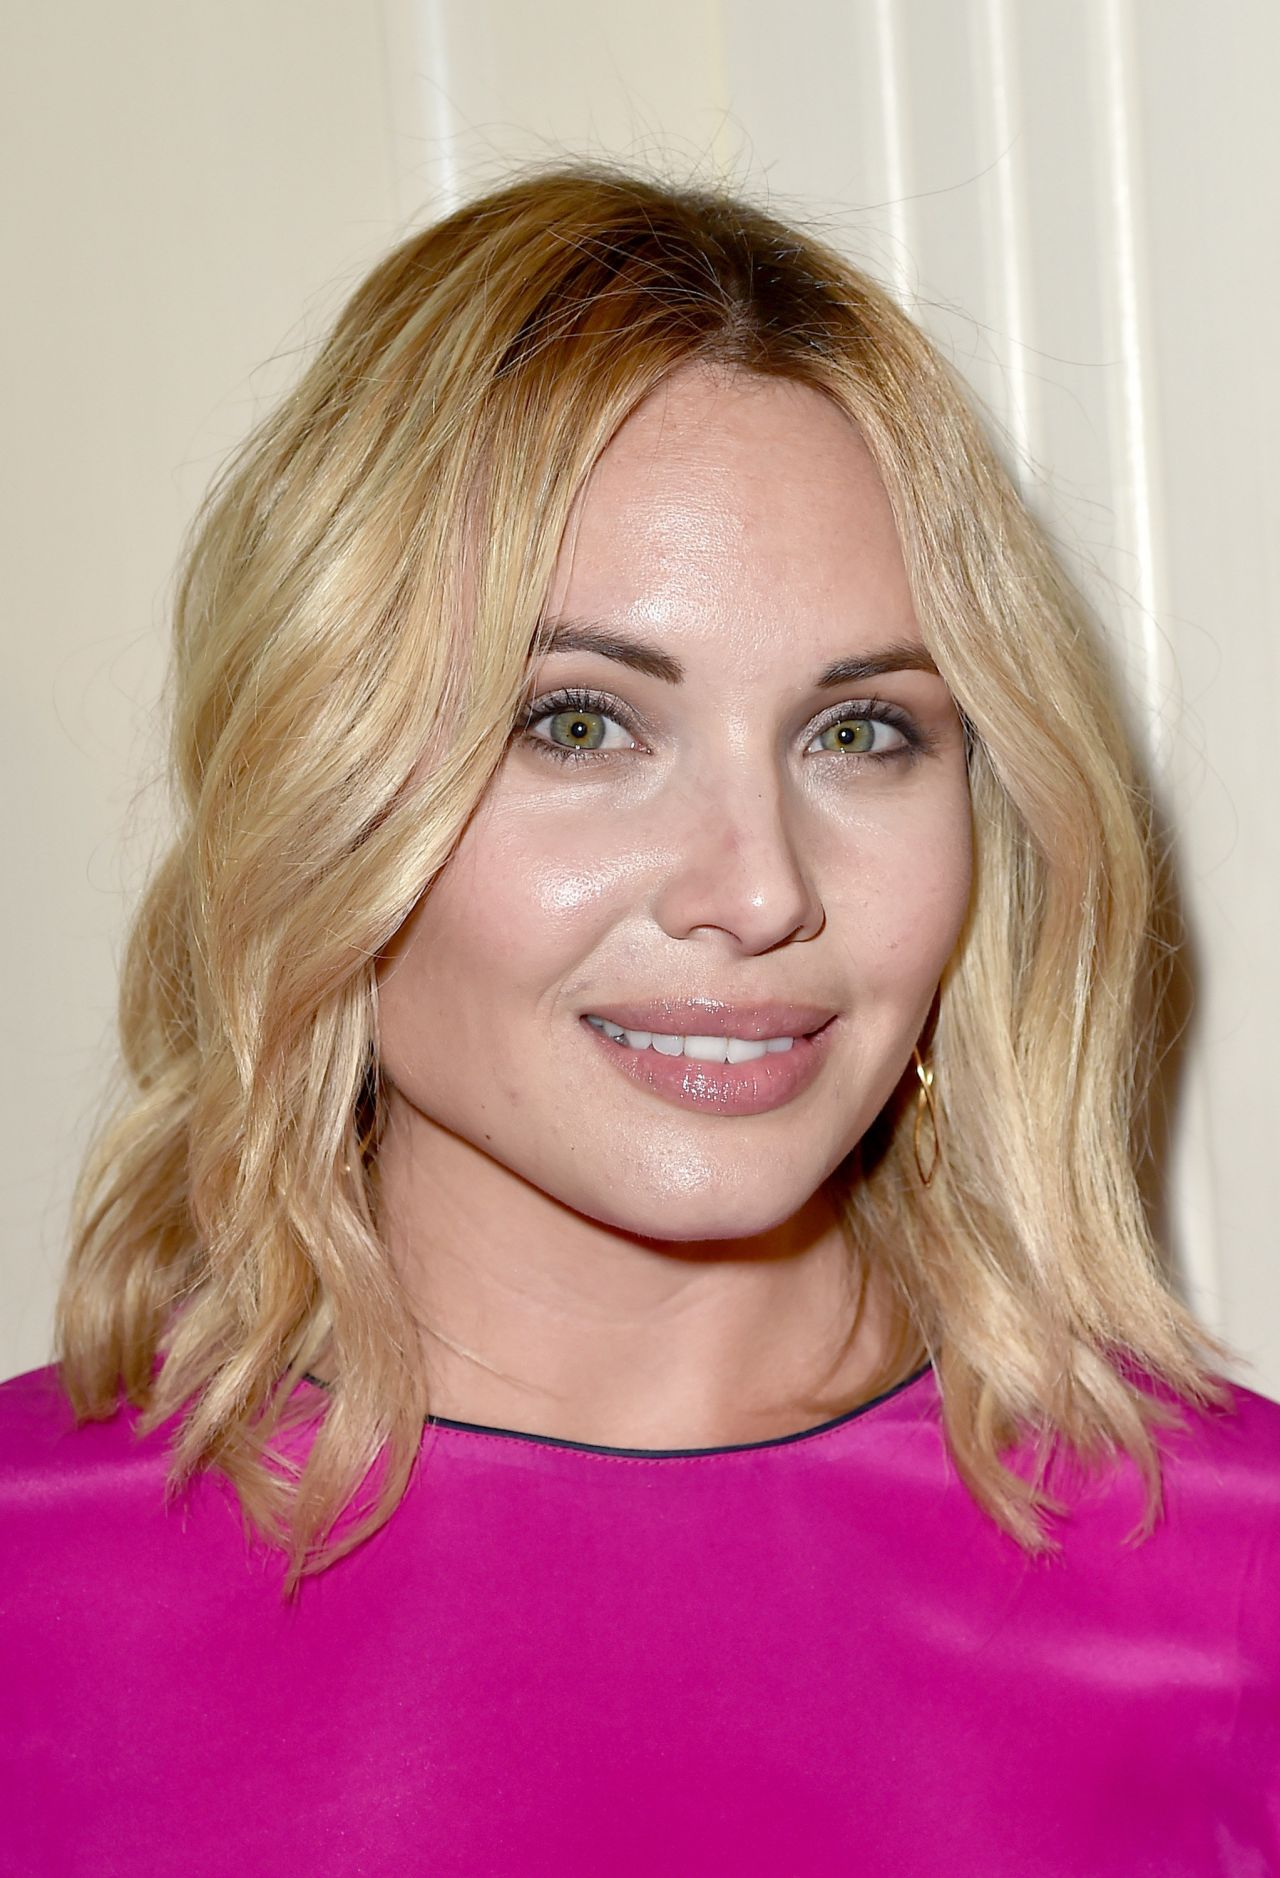 leah pipes - photo #2